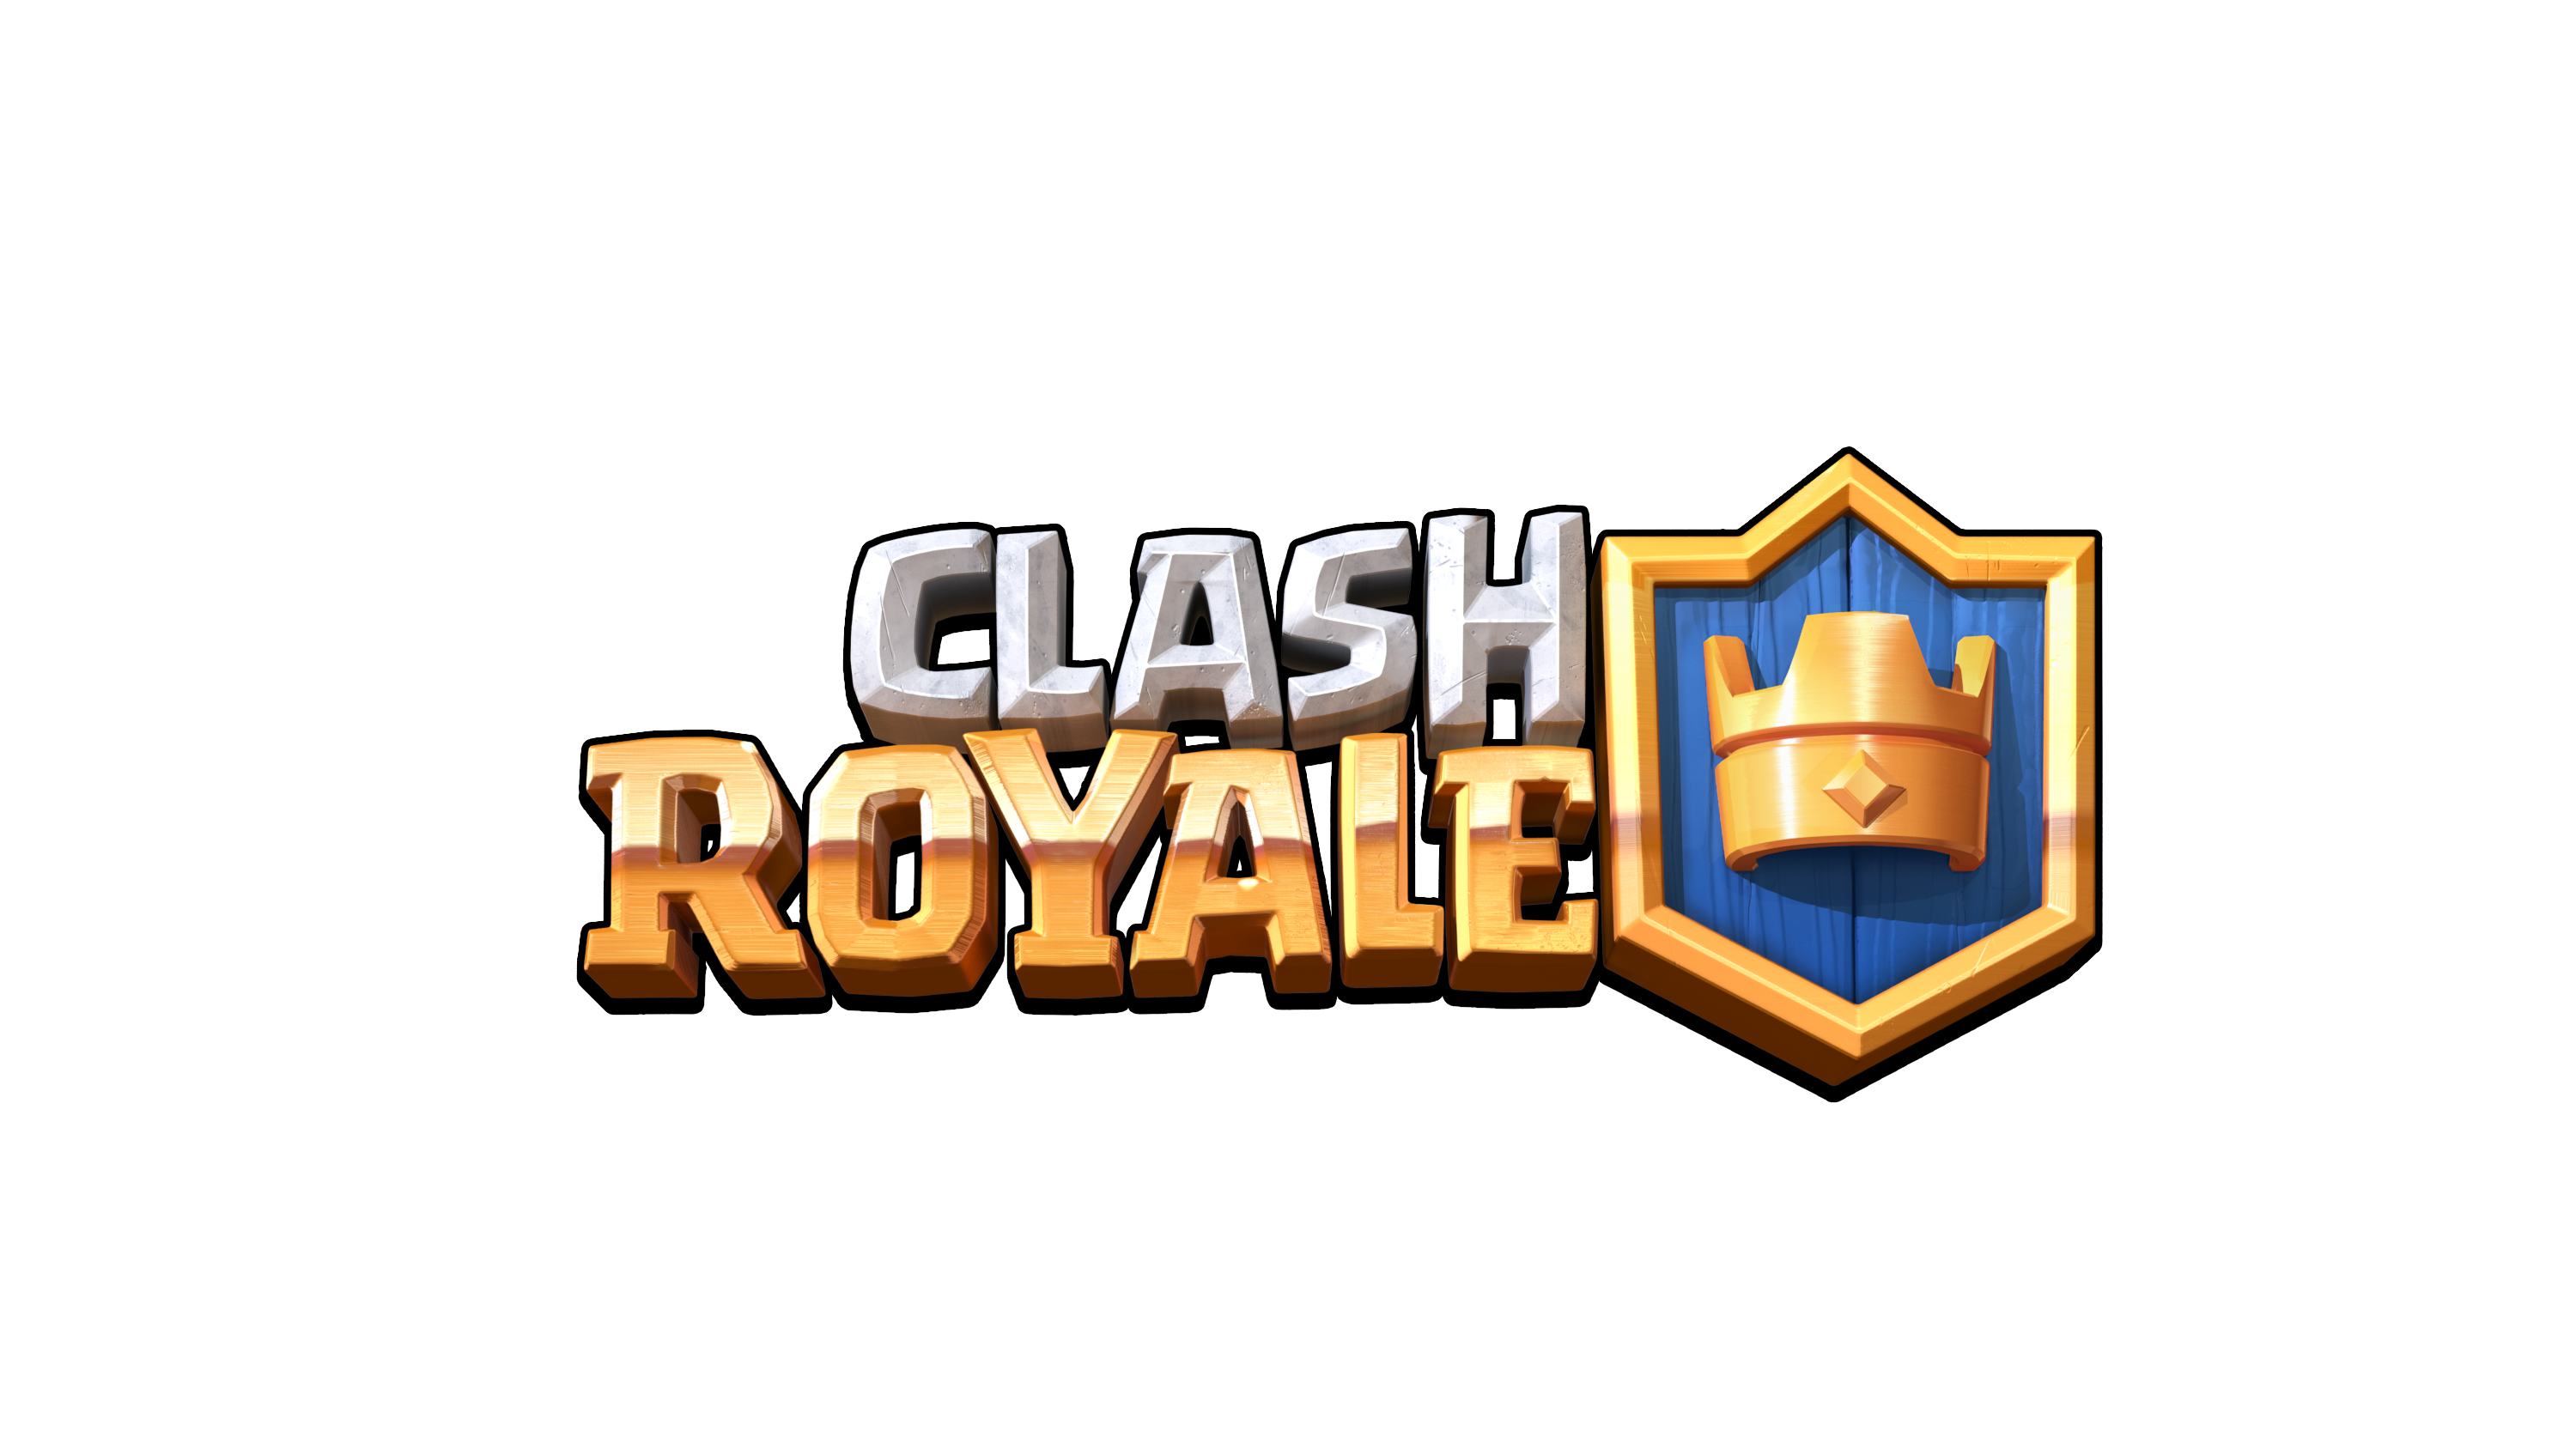 Clash royale the log png. About apk for android